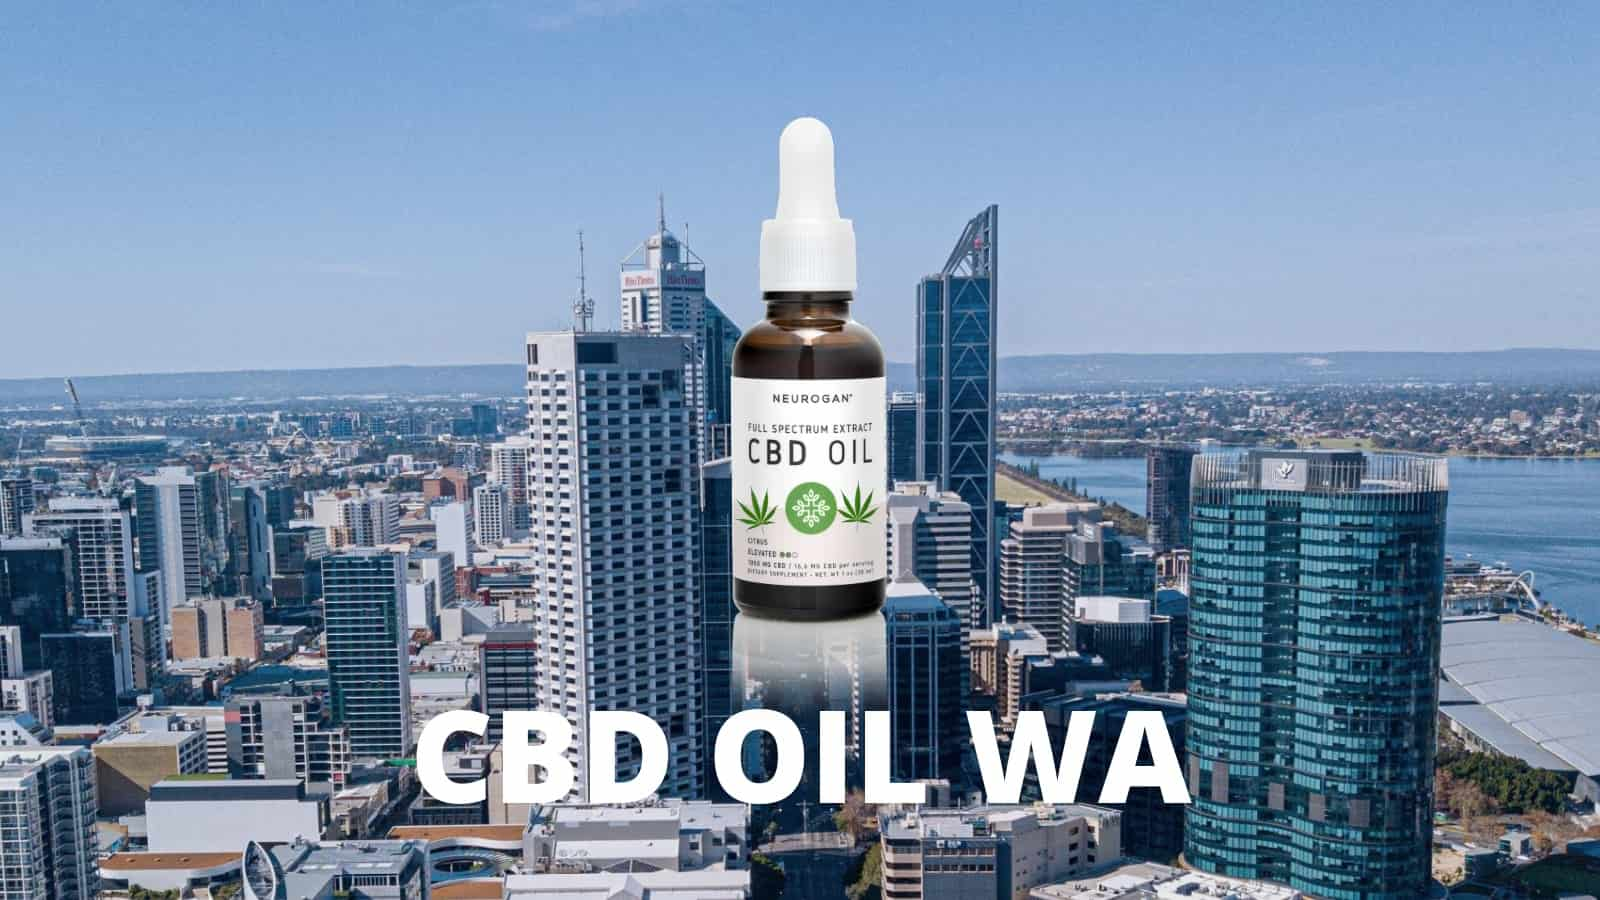 Is CBD Oil Available In Perth?